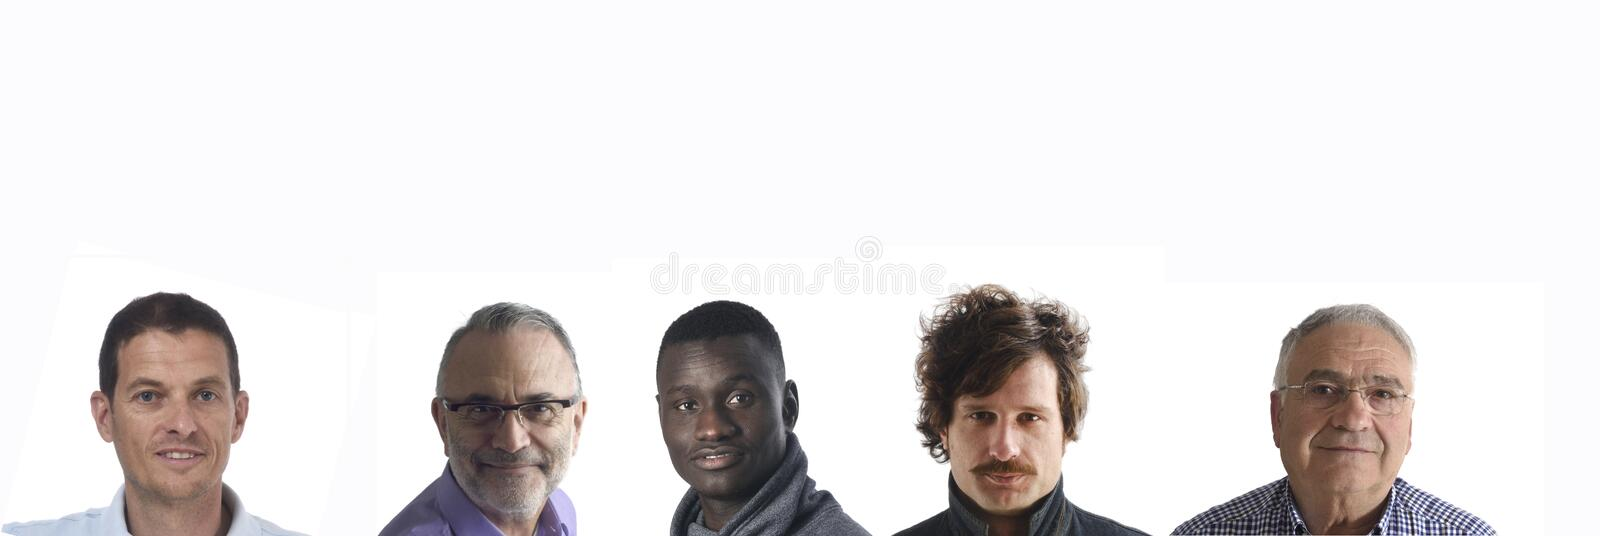 Portraits of several men on white background royalty free stock photography